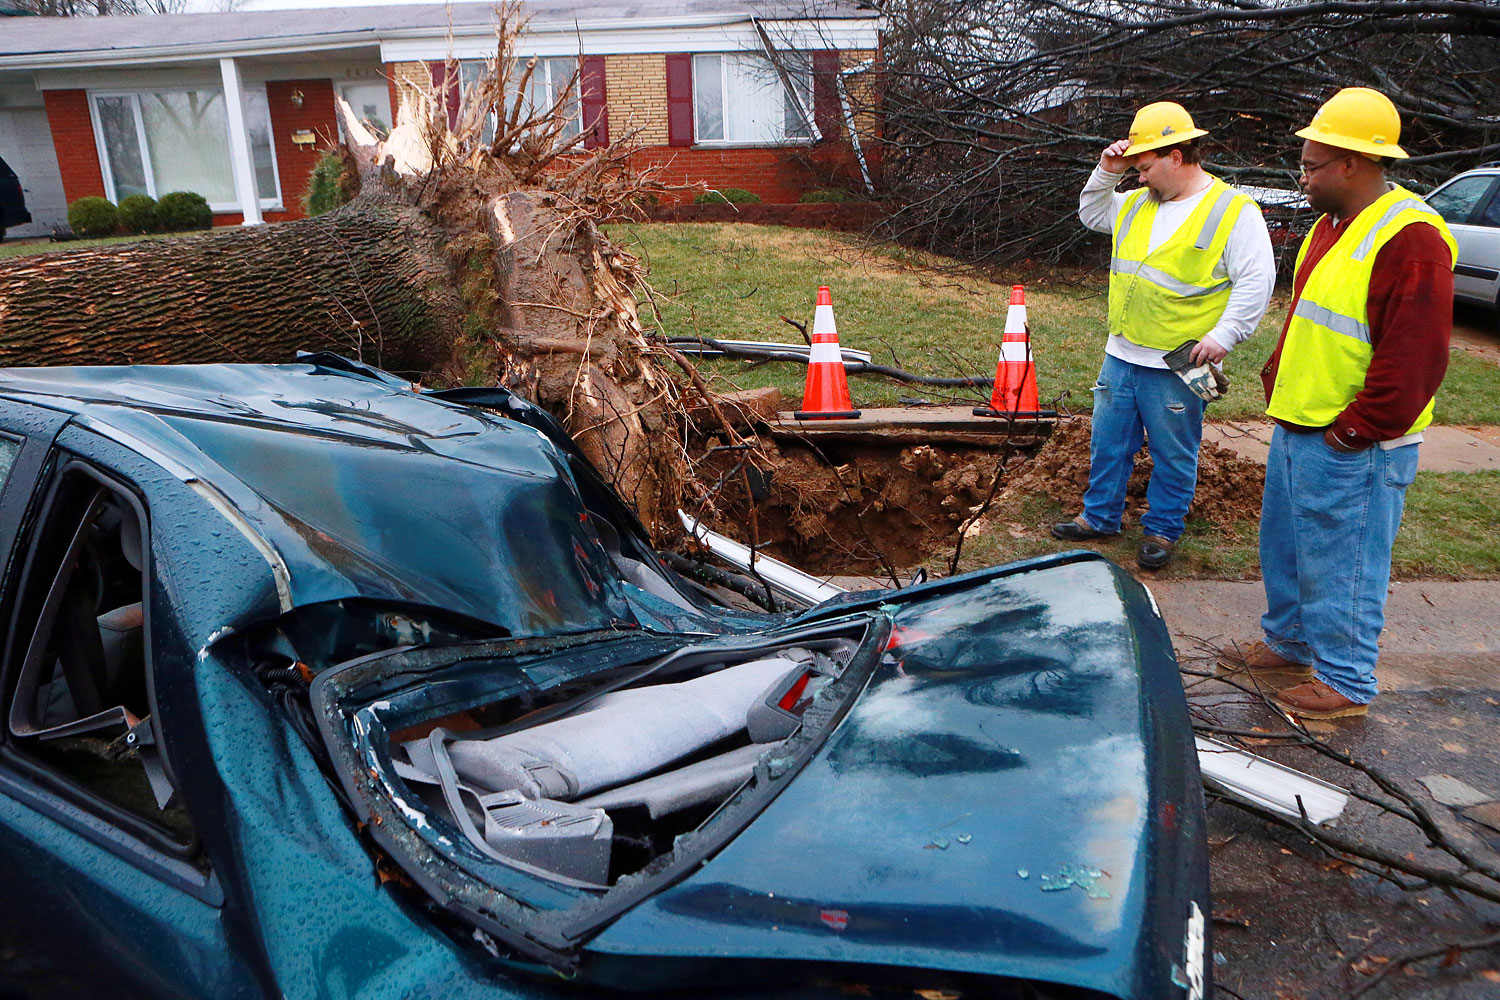 Jason Reidl, left, and Chris Thomas with Laclede Gas, look at a fallen tree that ruptured a gas main on Thursday April 3, 2014 in University City, Mo.